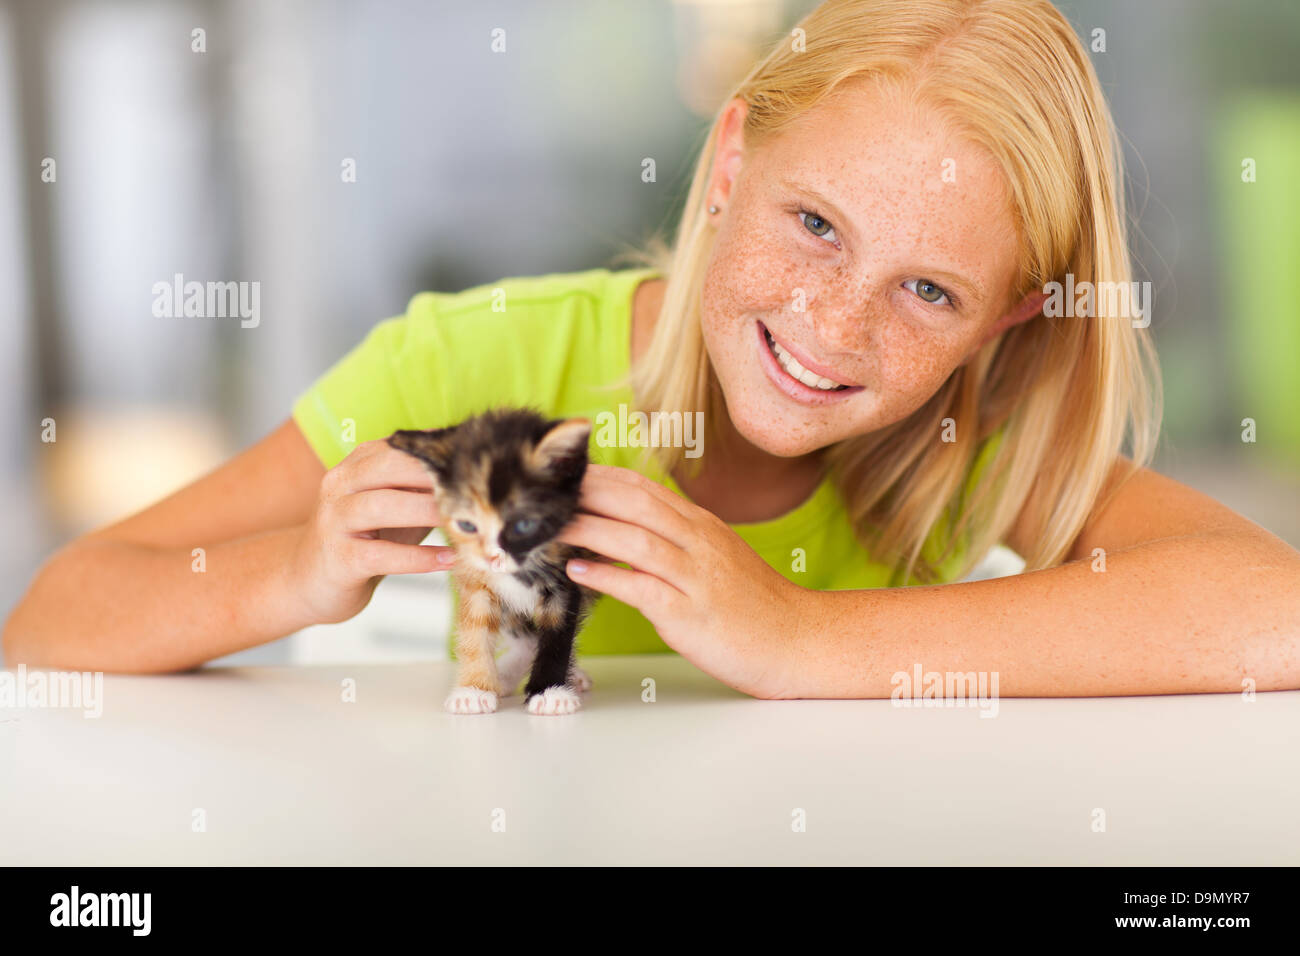 lovely pre teen girl with pet kitten at home - Stock Image